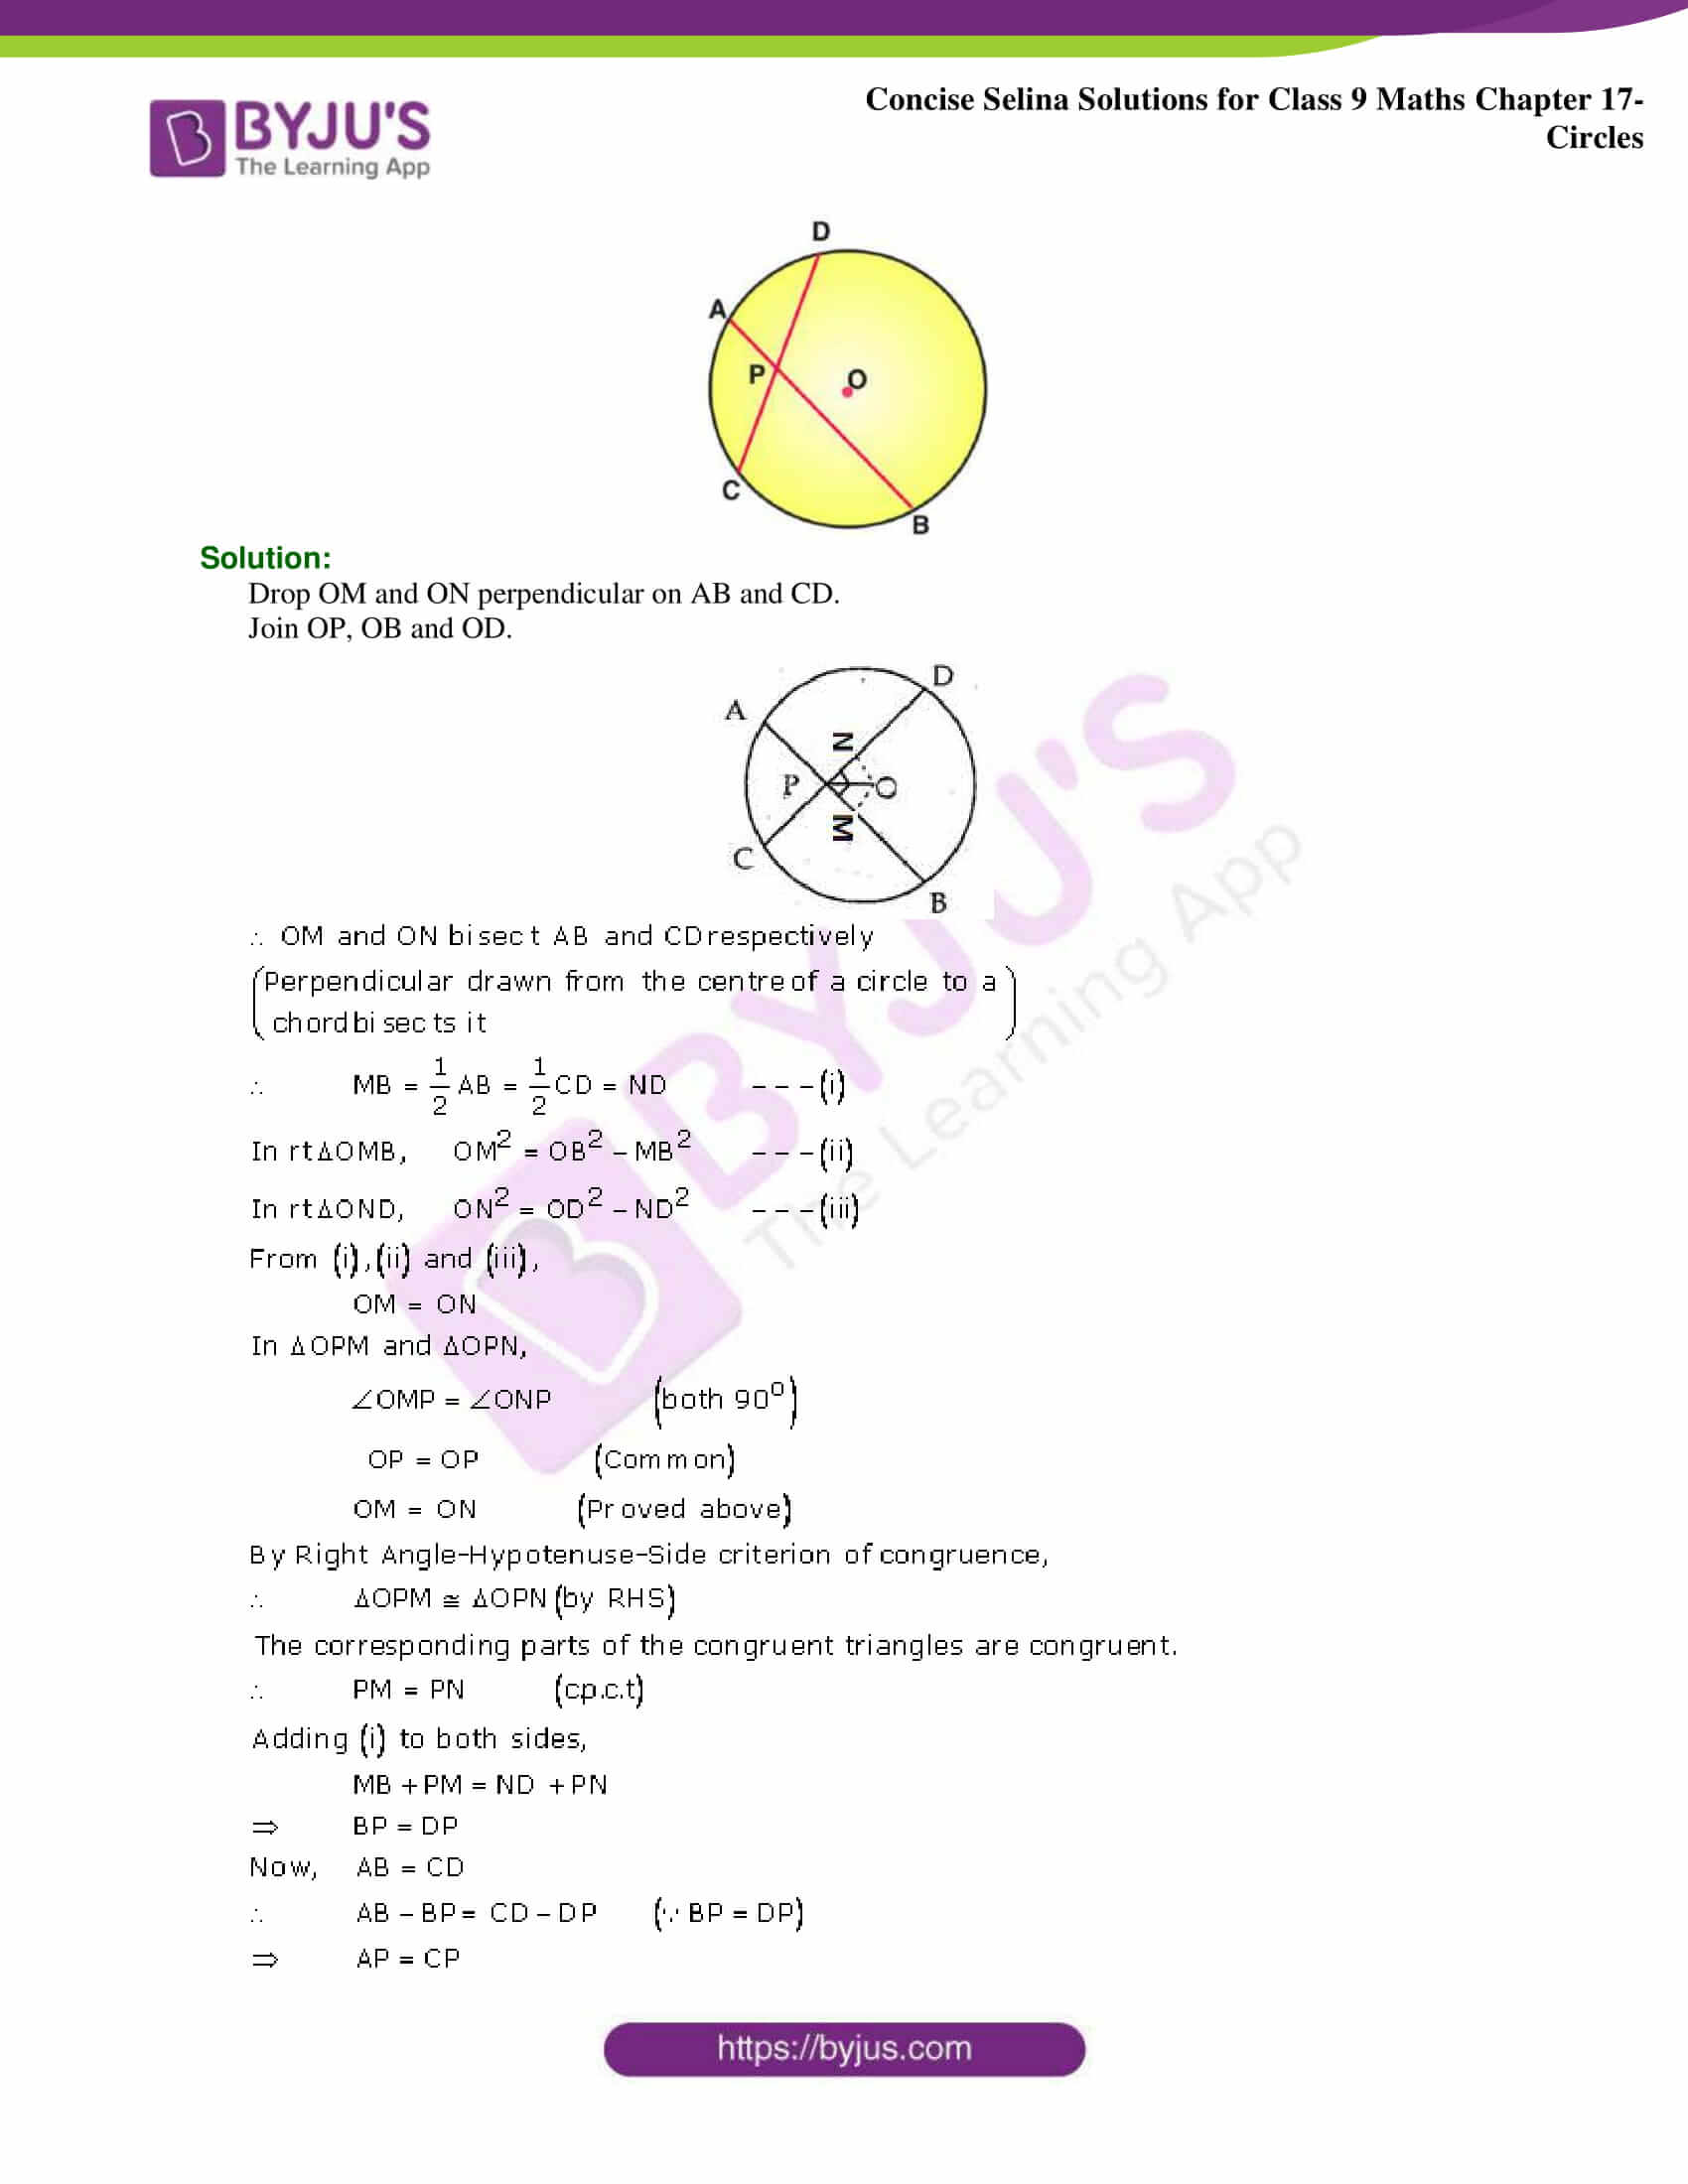 Concise Selina Solutions Class 9 Maths Chapter 17 Circles part 13